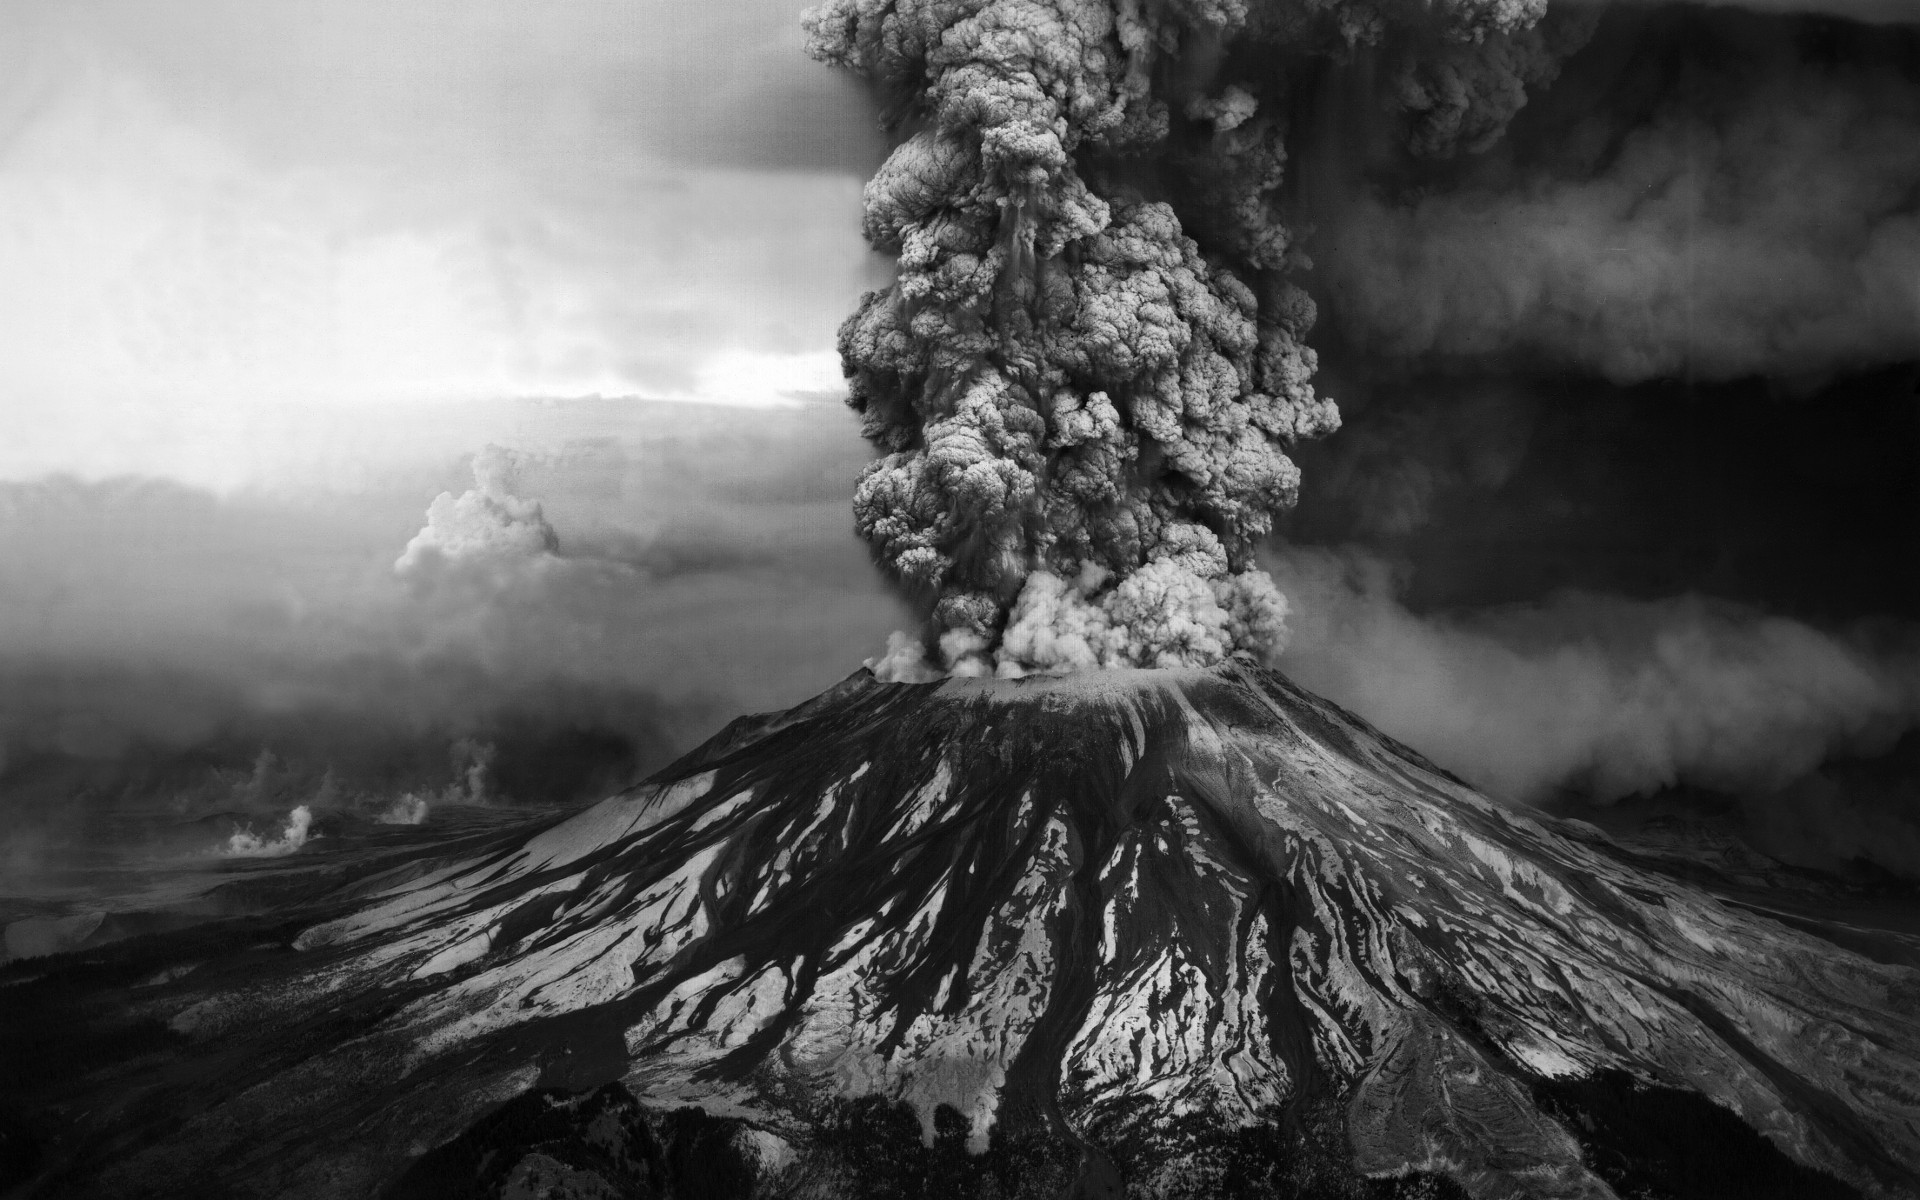 Volcano, black and white photo